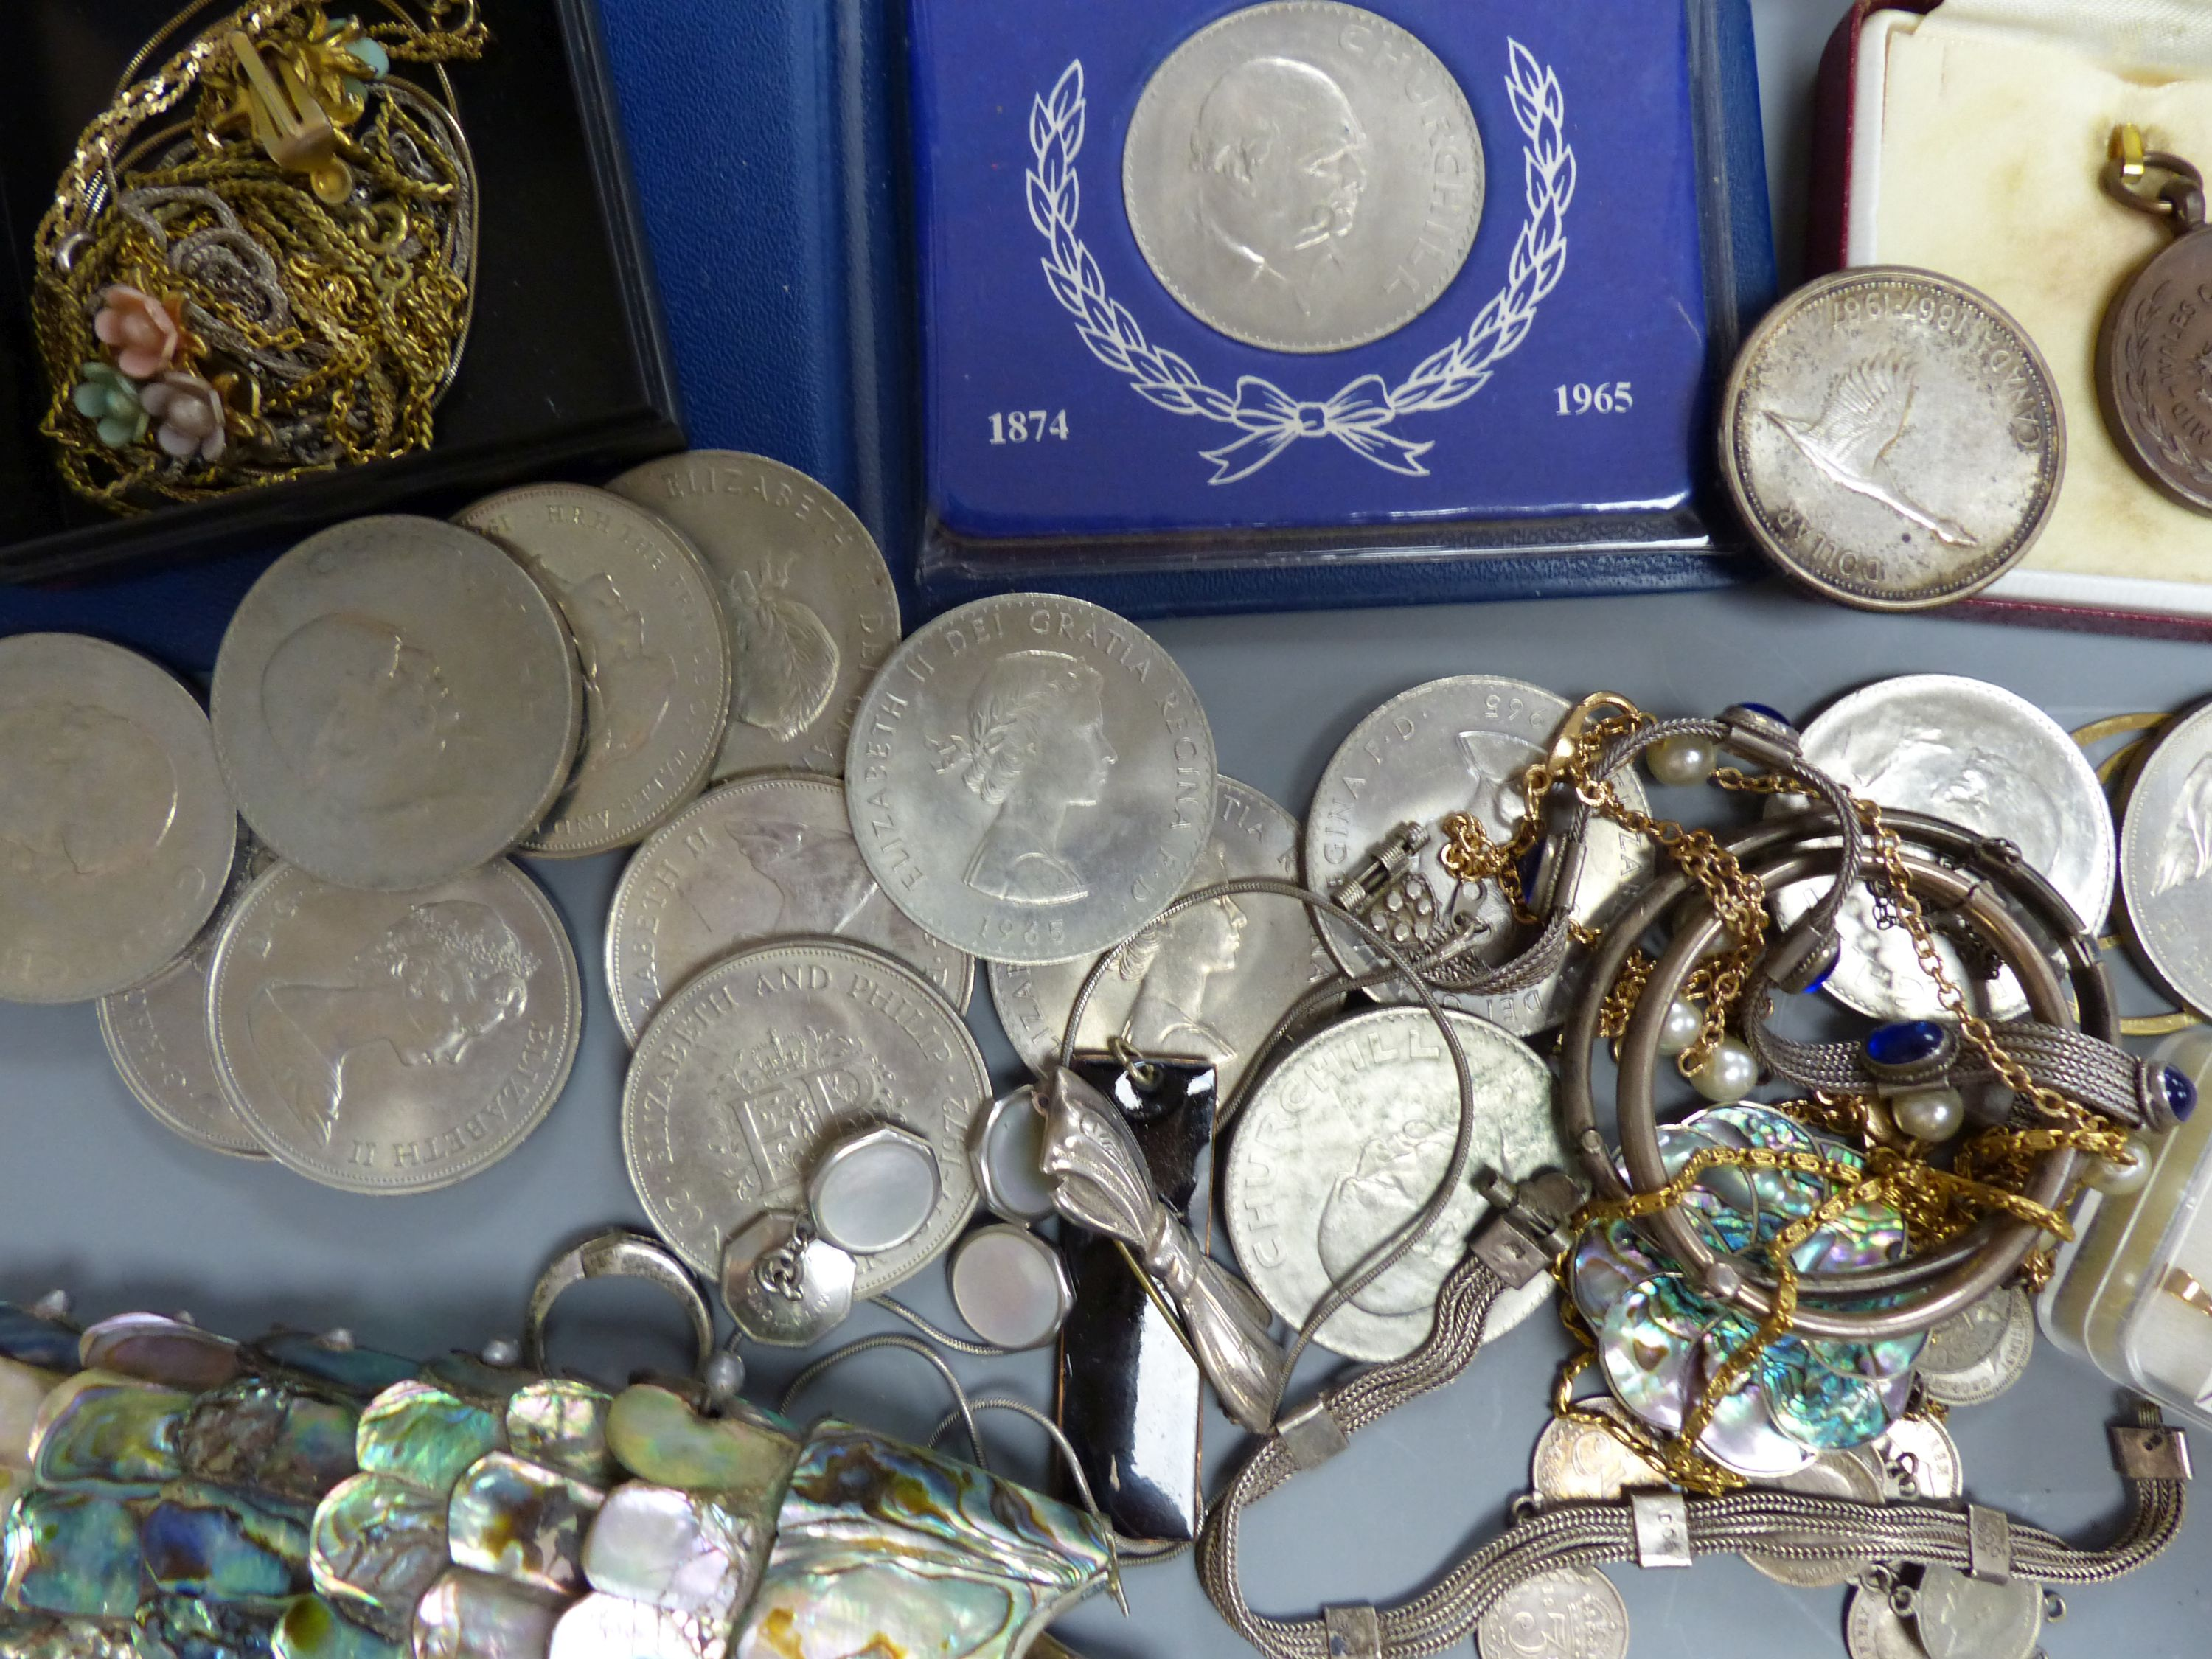 A quantity of mixed costume jewellery, an articulated fish, coins etc - Image 4 of 5